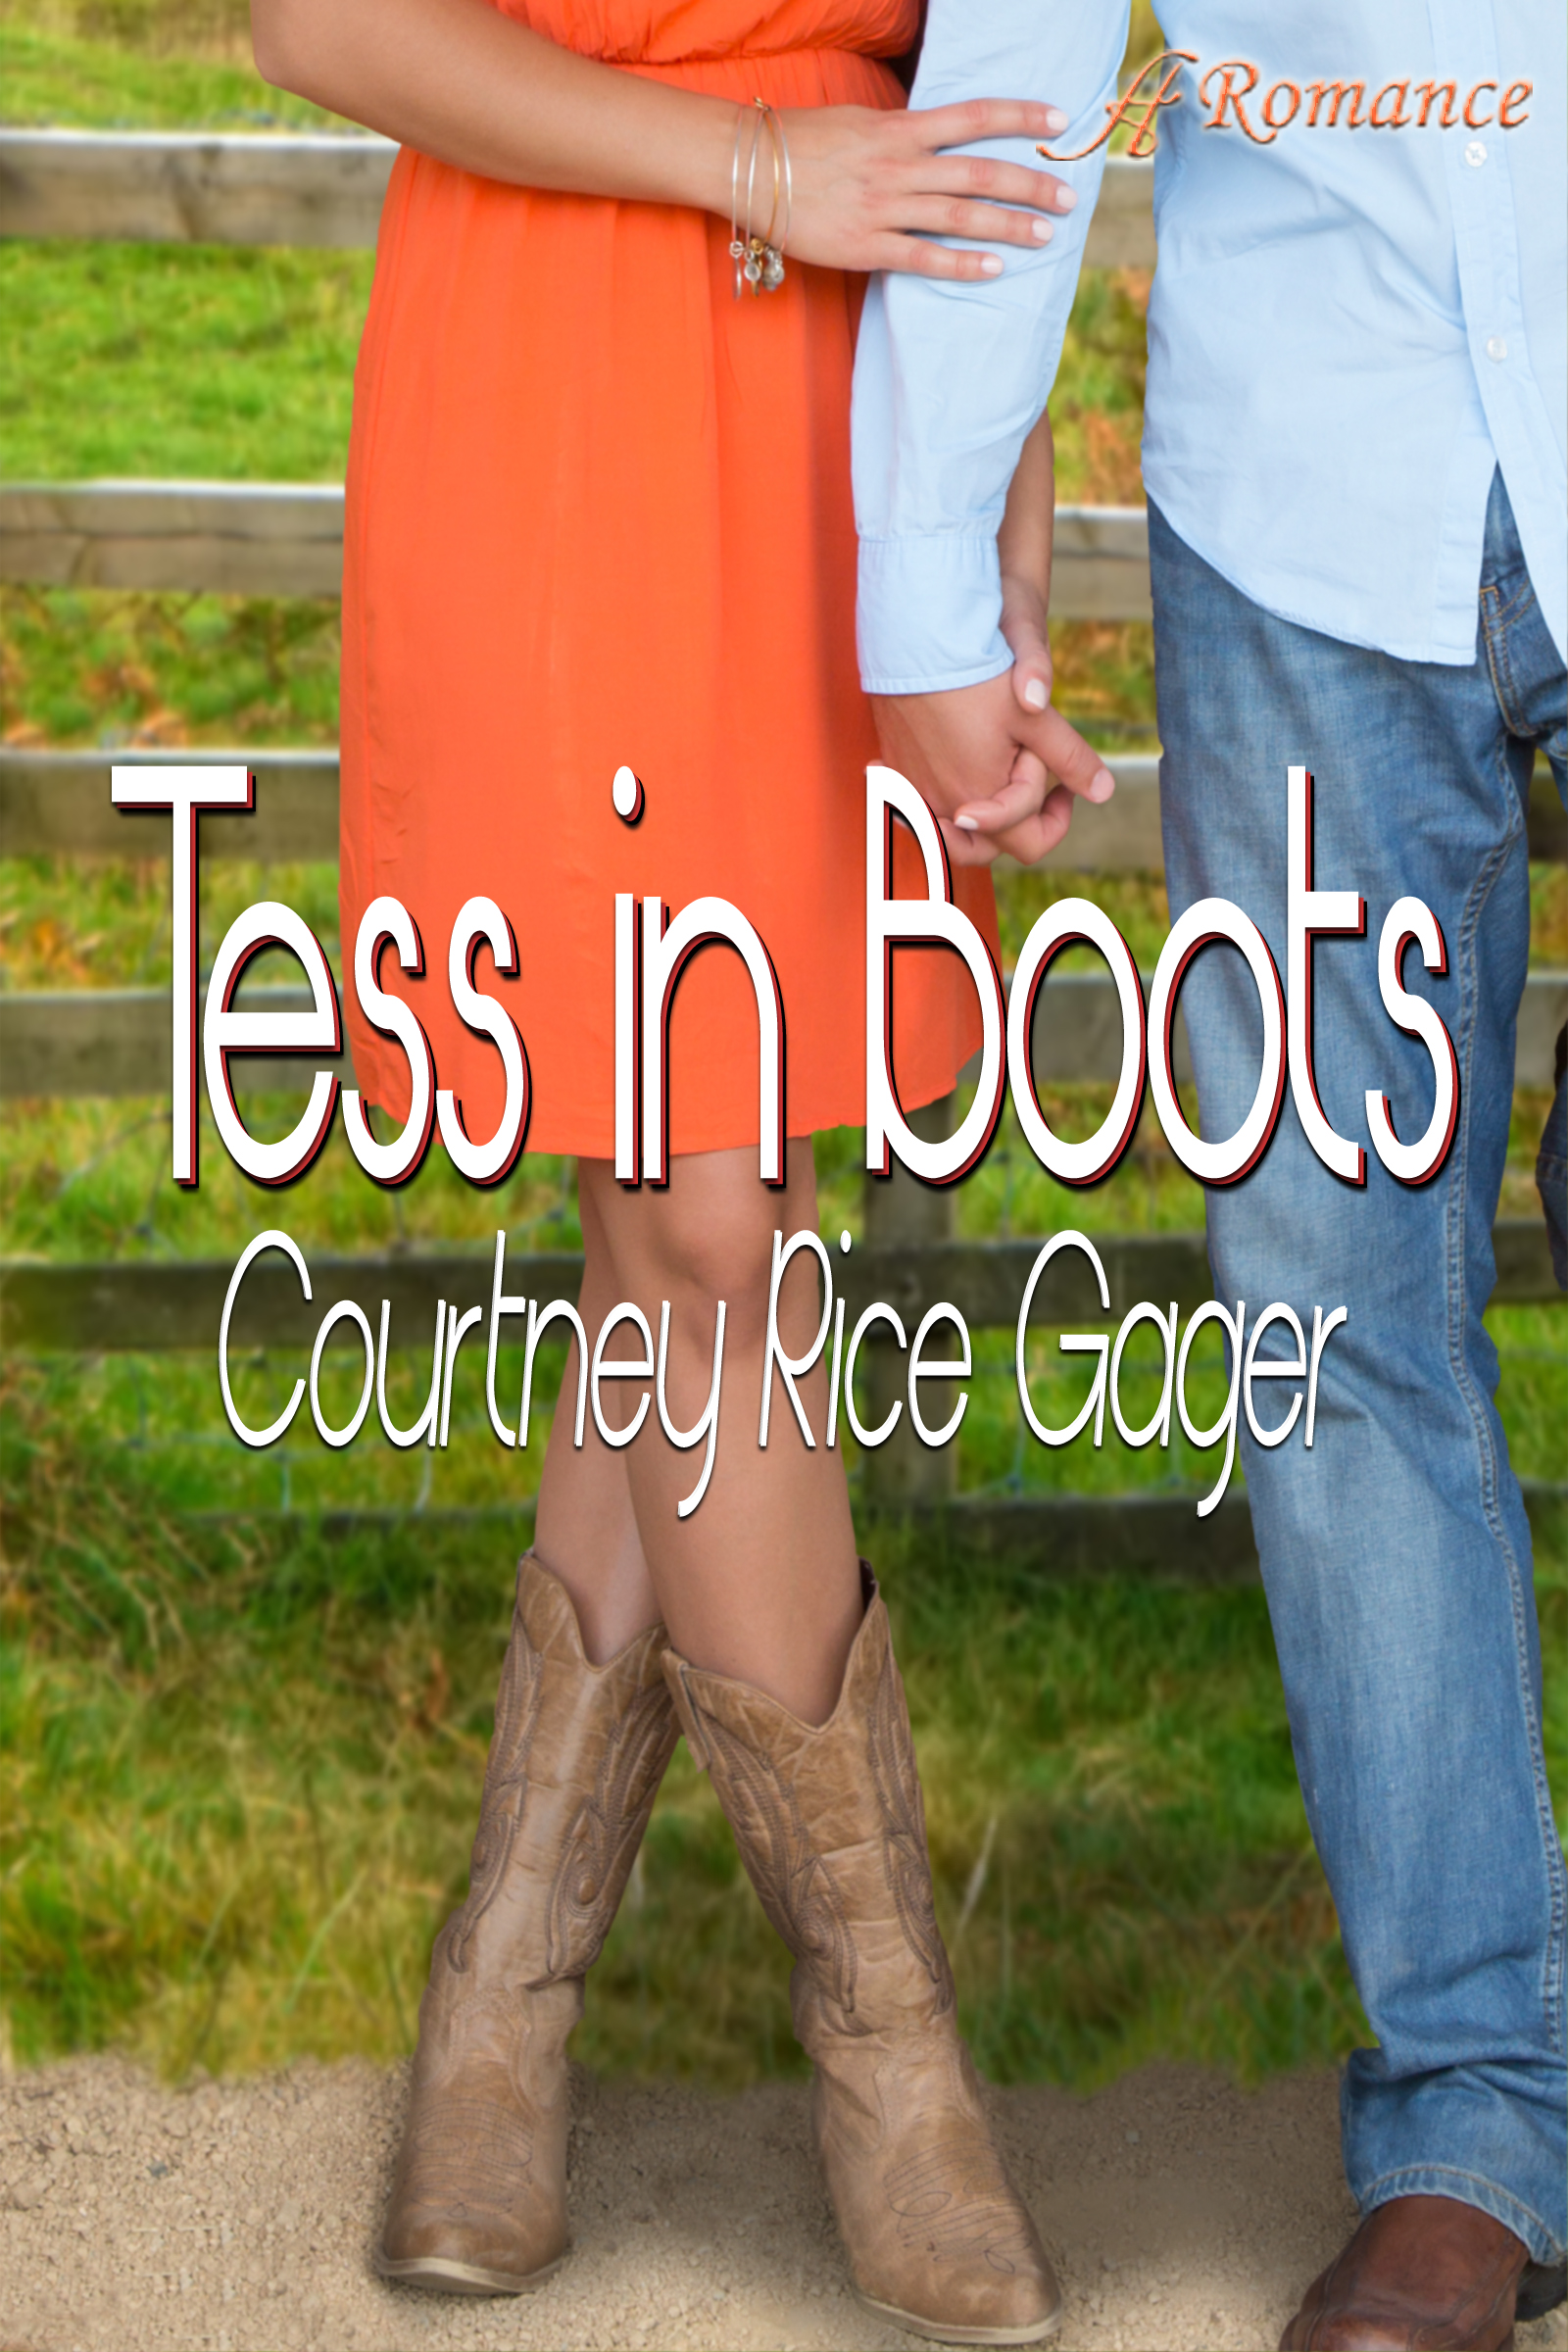 Purchase Tess in Boots on Amazon